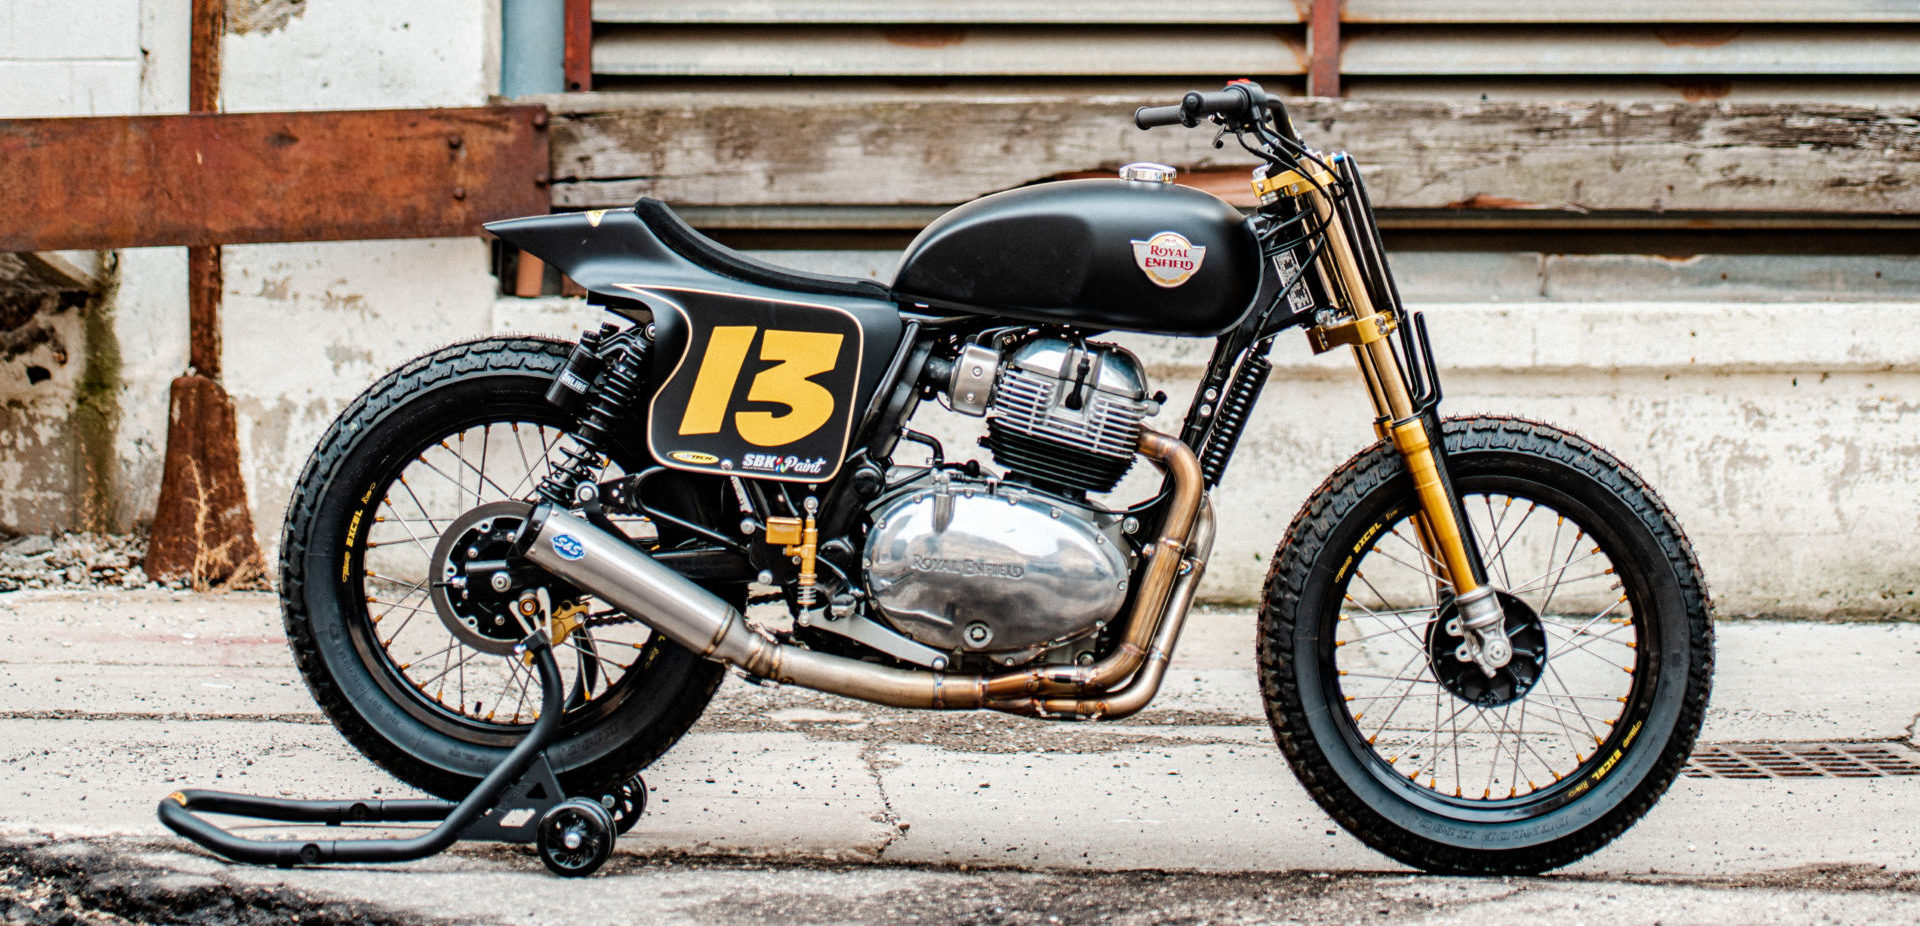 The right side of Melissa Paris' one-off Royal Enfield INT 650 flat tracker. Photo by Brandon LaJoir, courtesy of Royal Enfield North America.